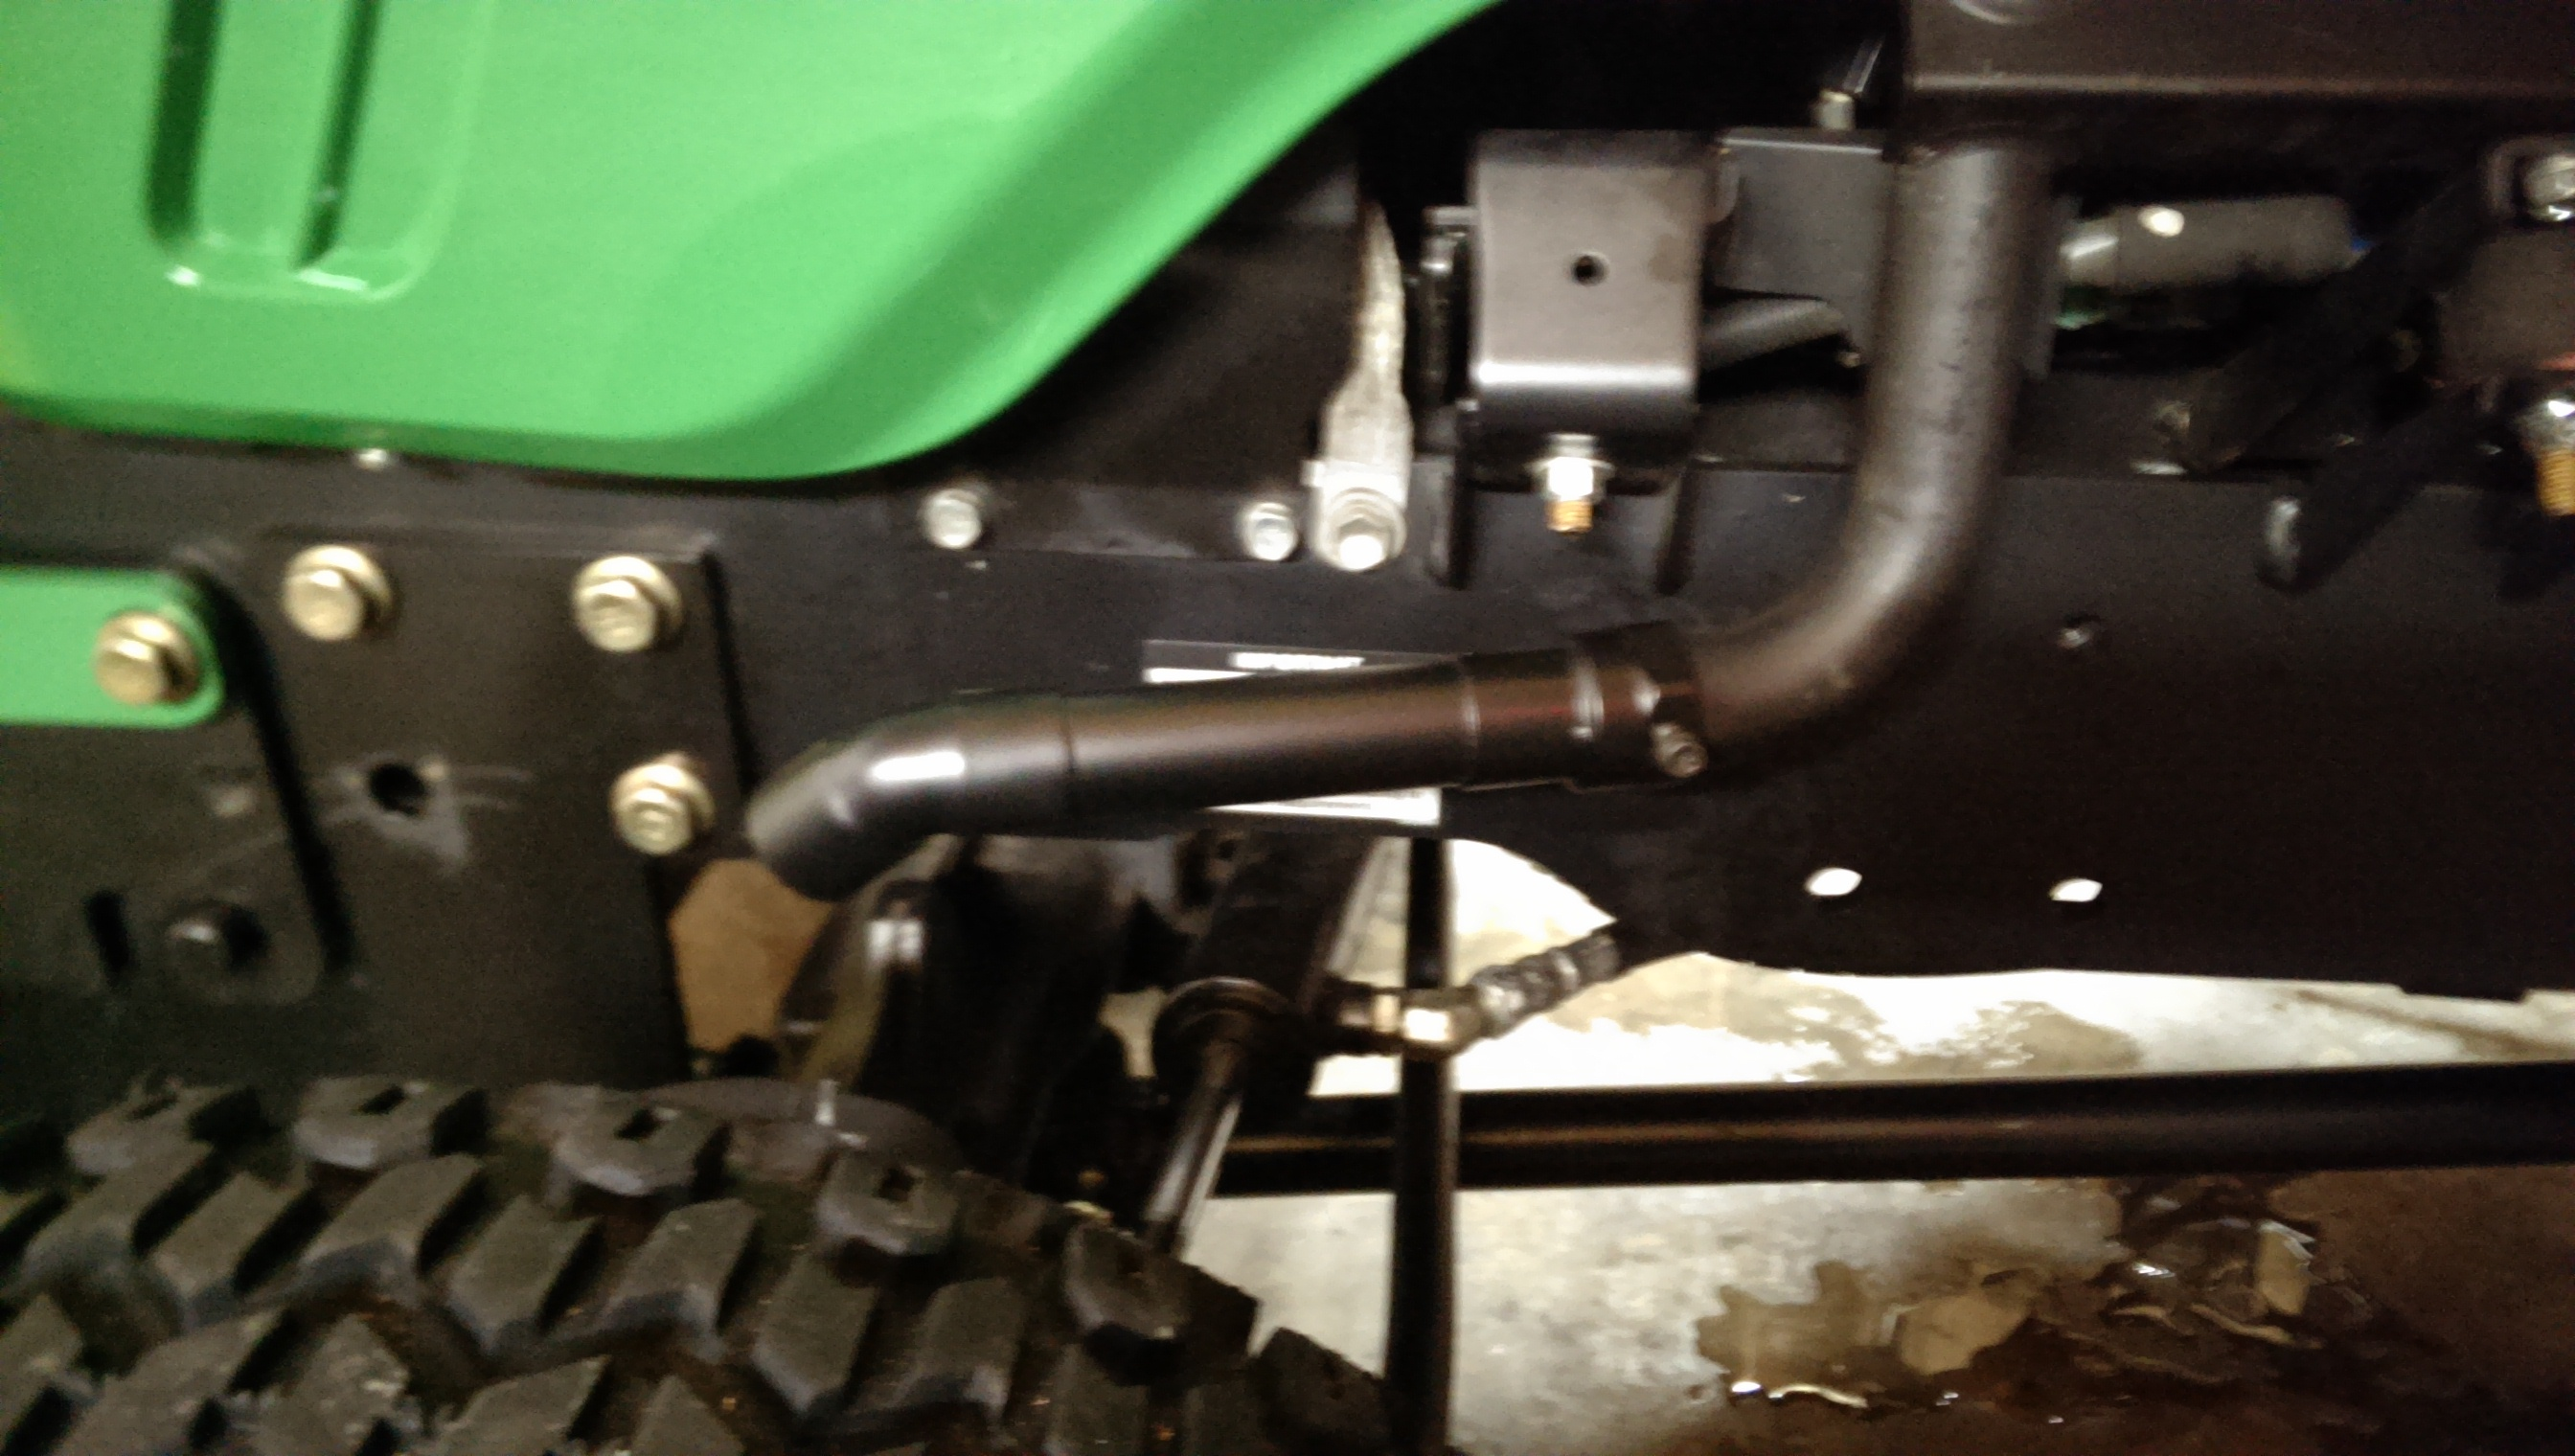 Tractor Exhaust Pipe Extension : Exhaust extension for